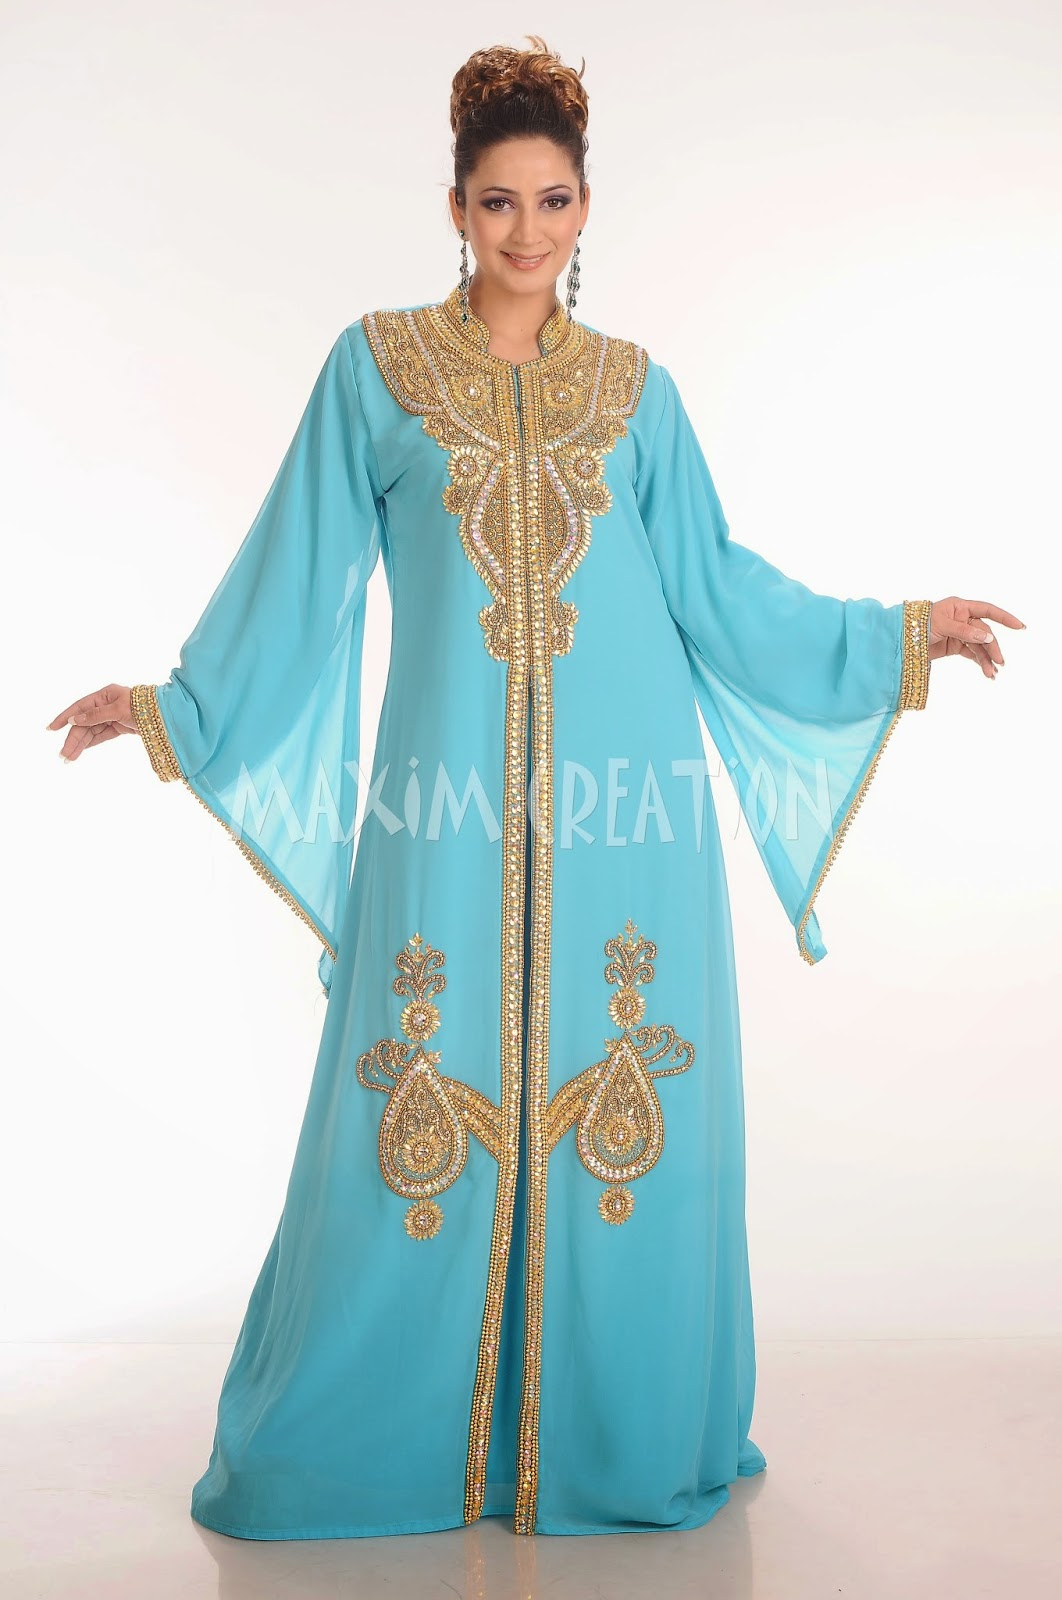 Kaftan Dress: Jellabiya